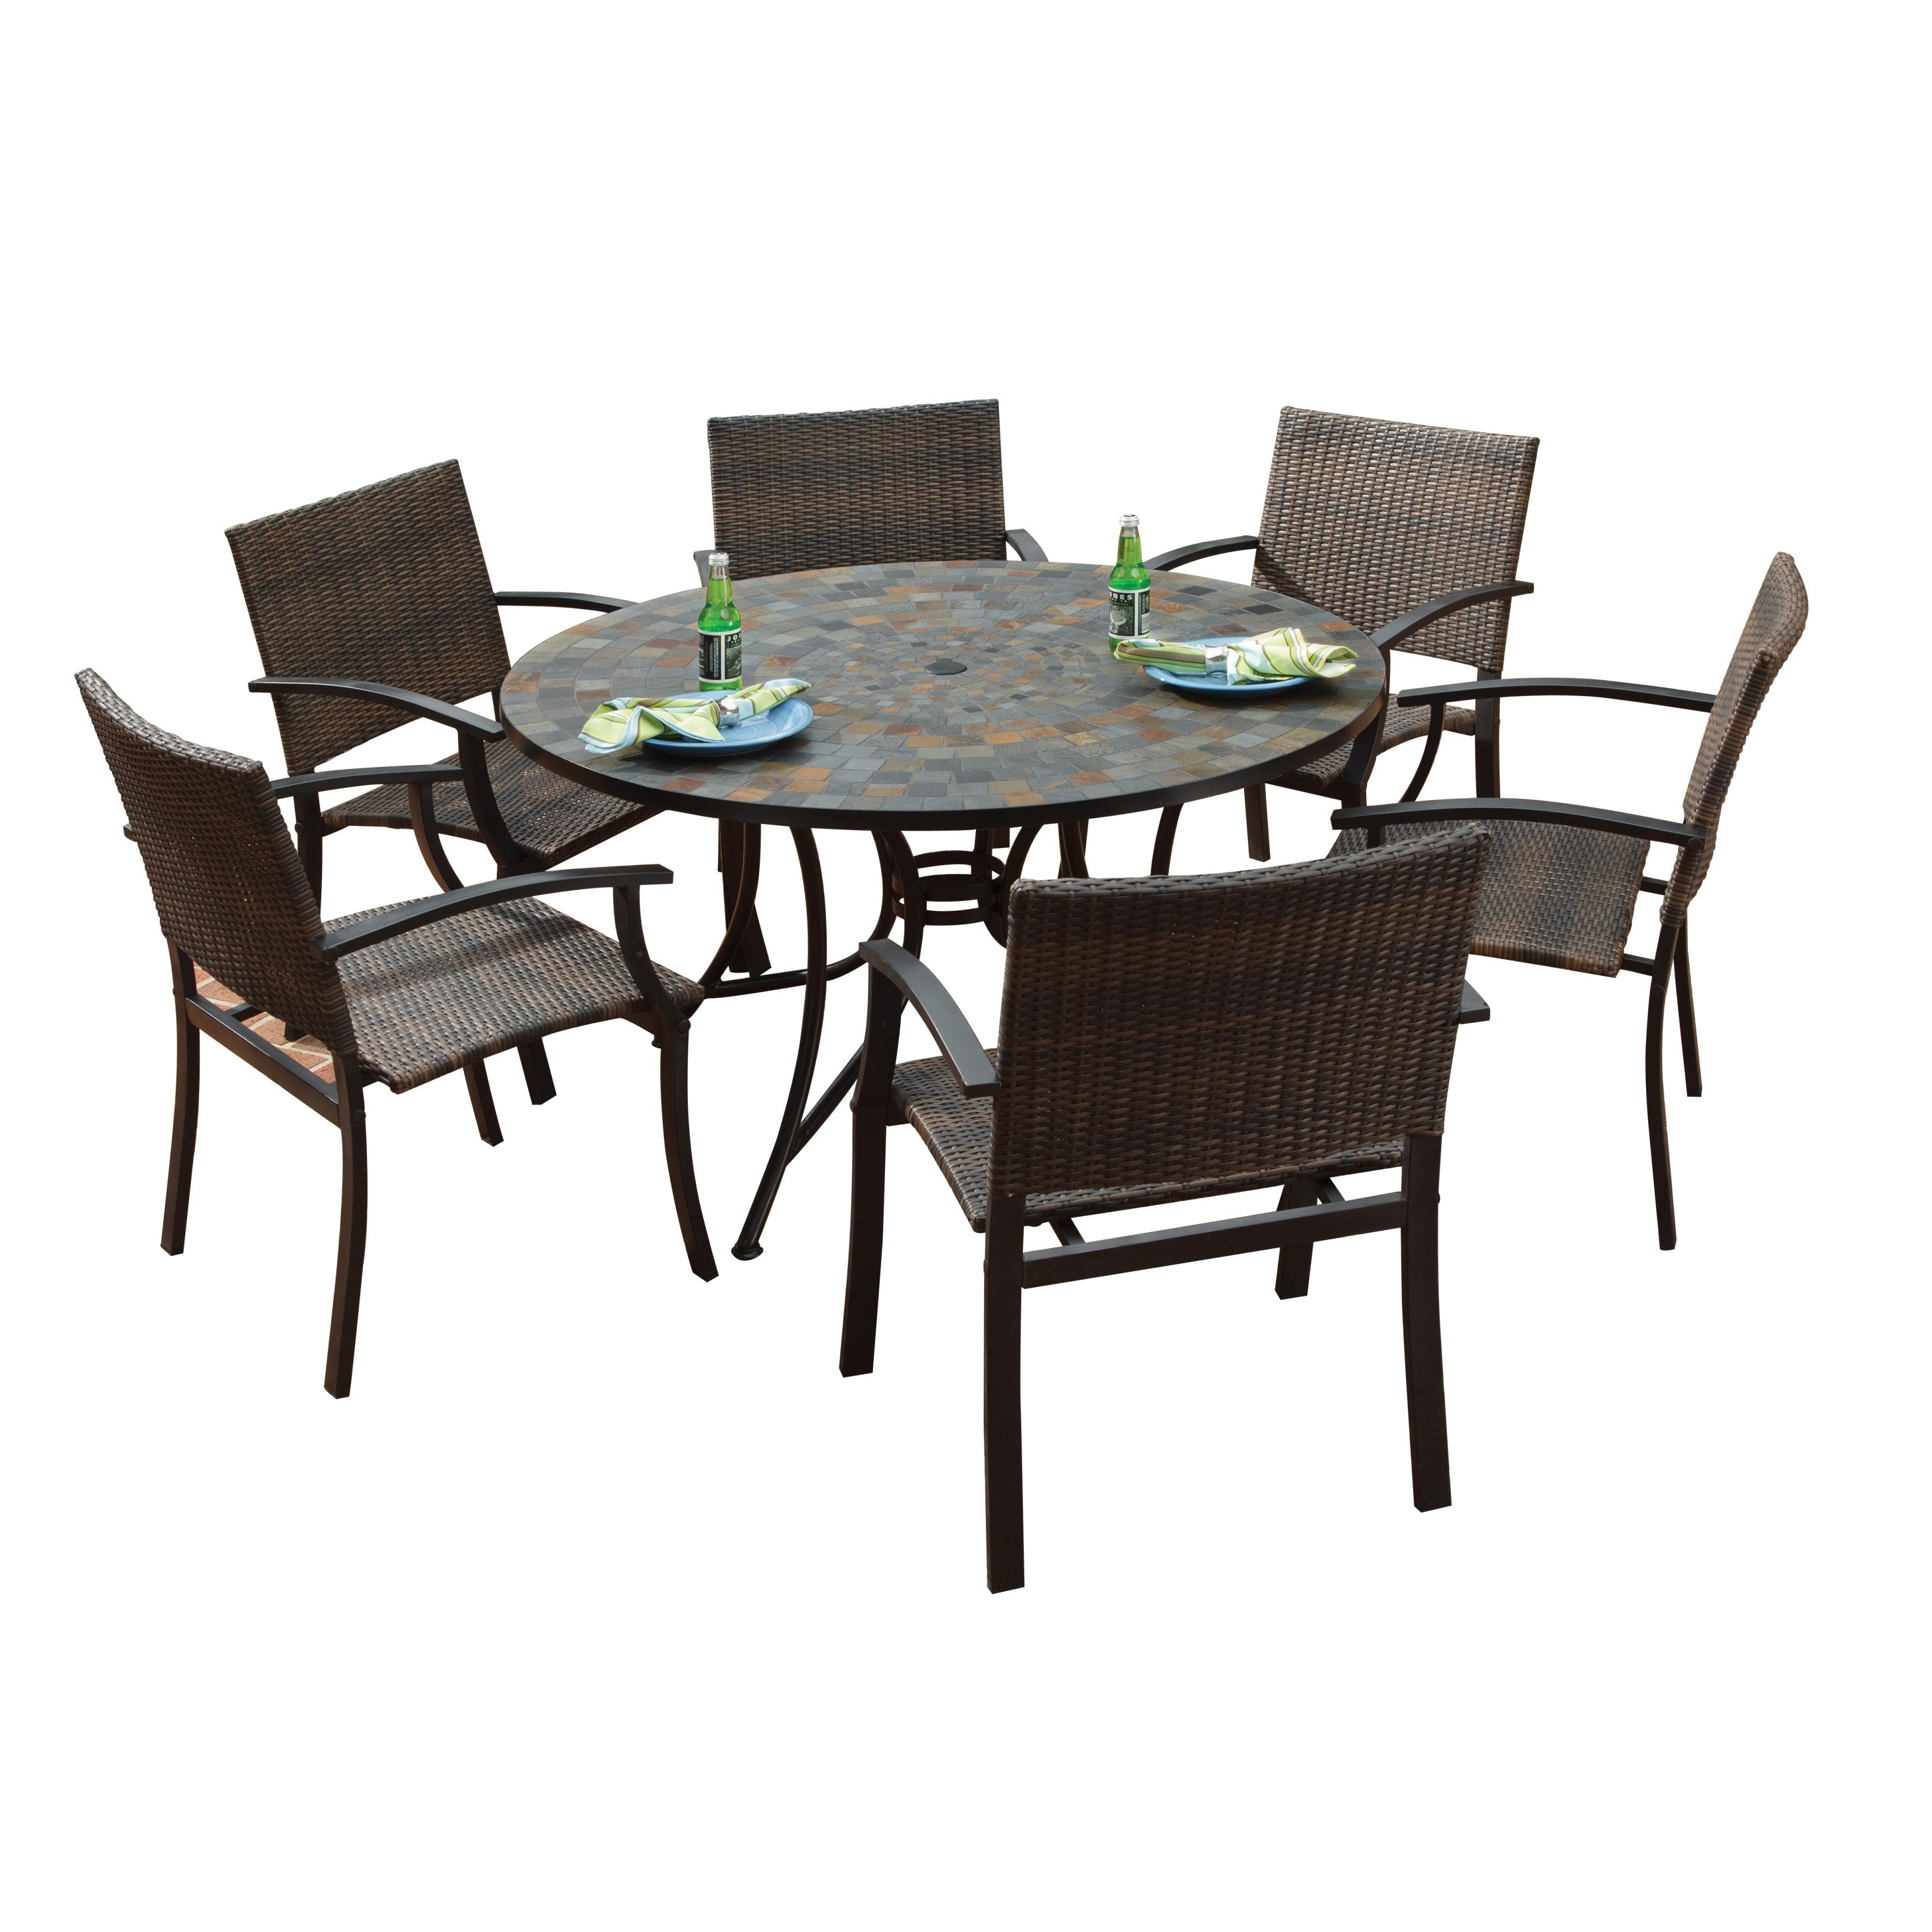 Stone Harbor Round Dining Table and Newport Arm Chairs 7 piece Outdoor